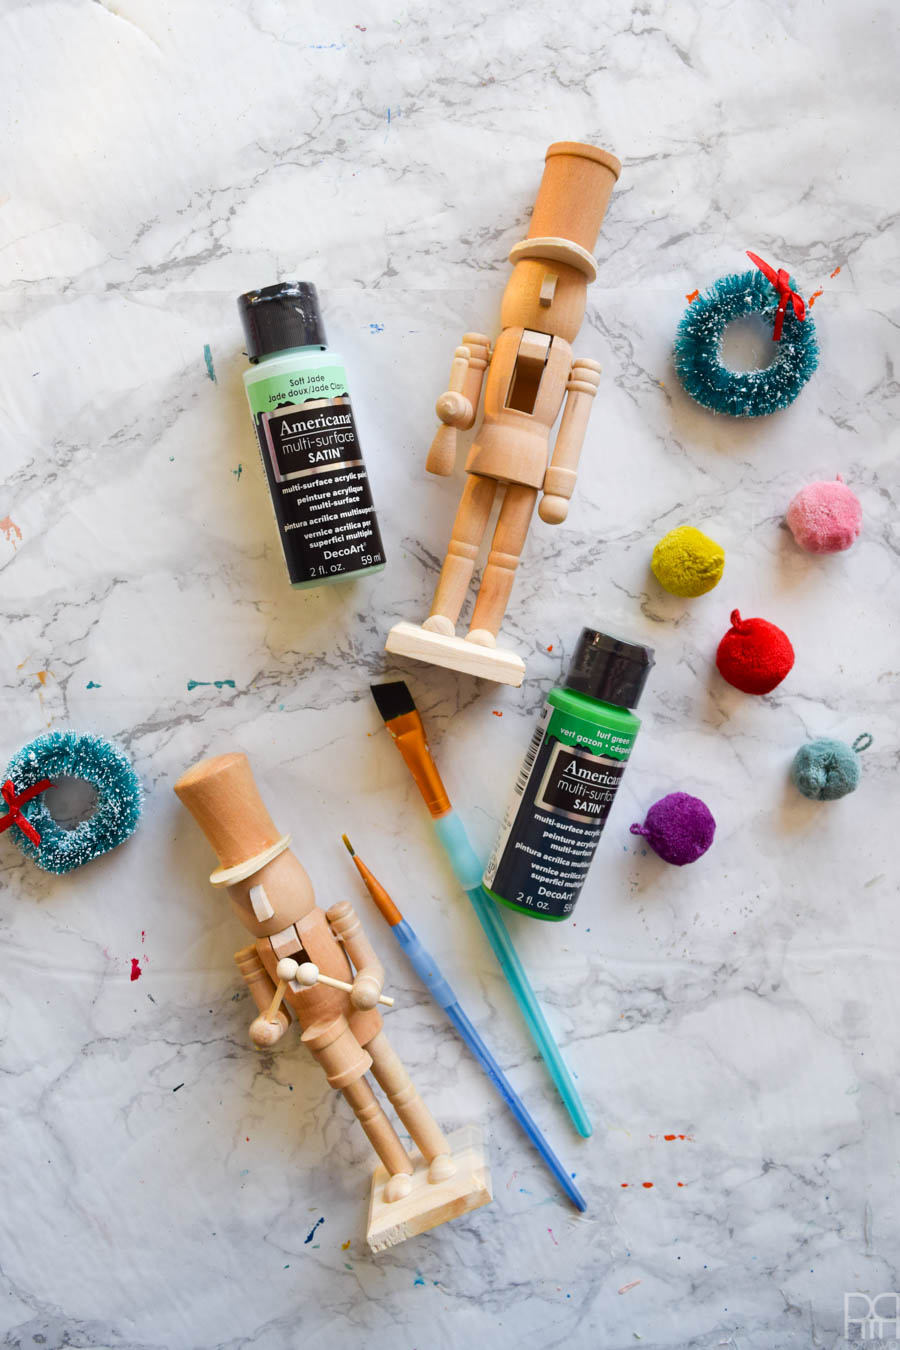 The holidays aren't completed with seasonal decor, and my contribution to this year's scene are some Colourful Painted Nutcrackers that I made using DecoArt's satin enamel paints. Come take a look!